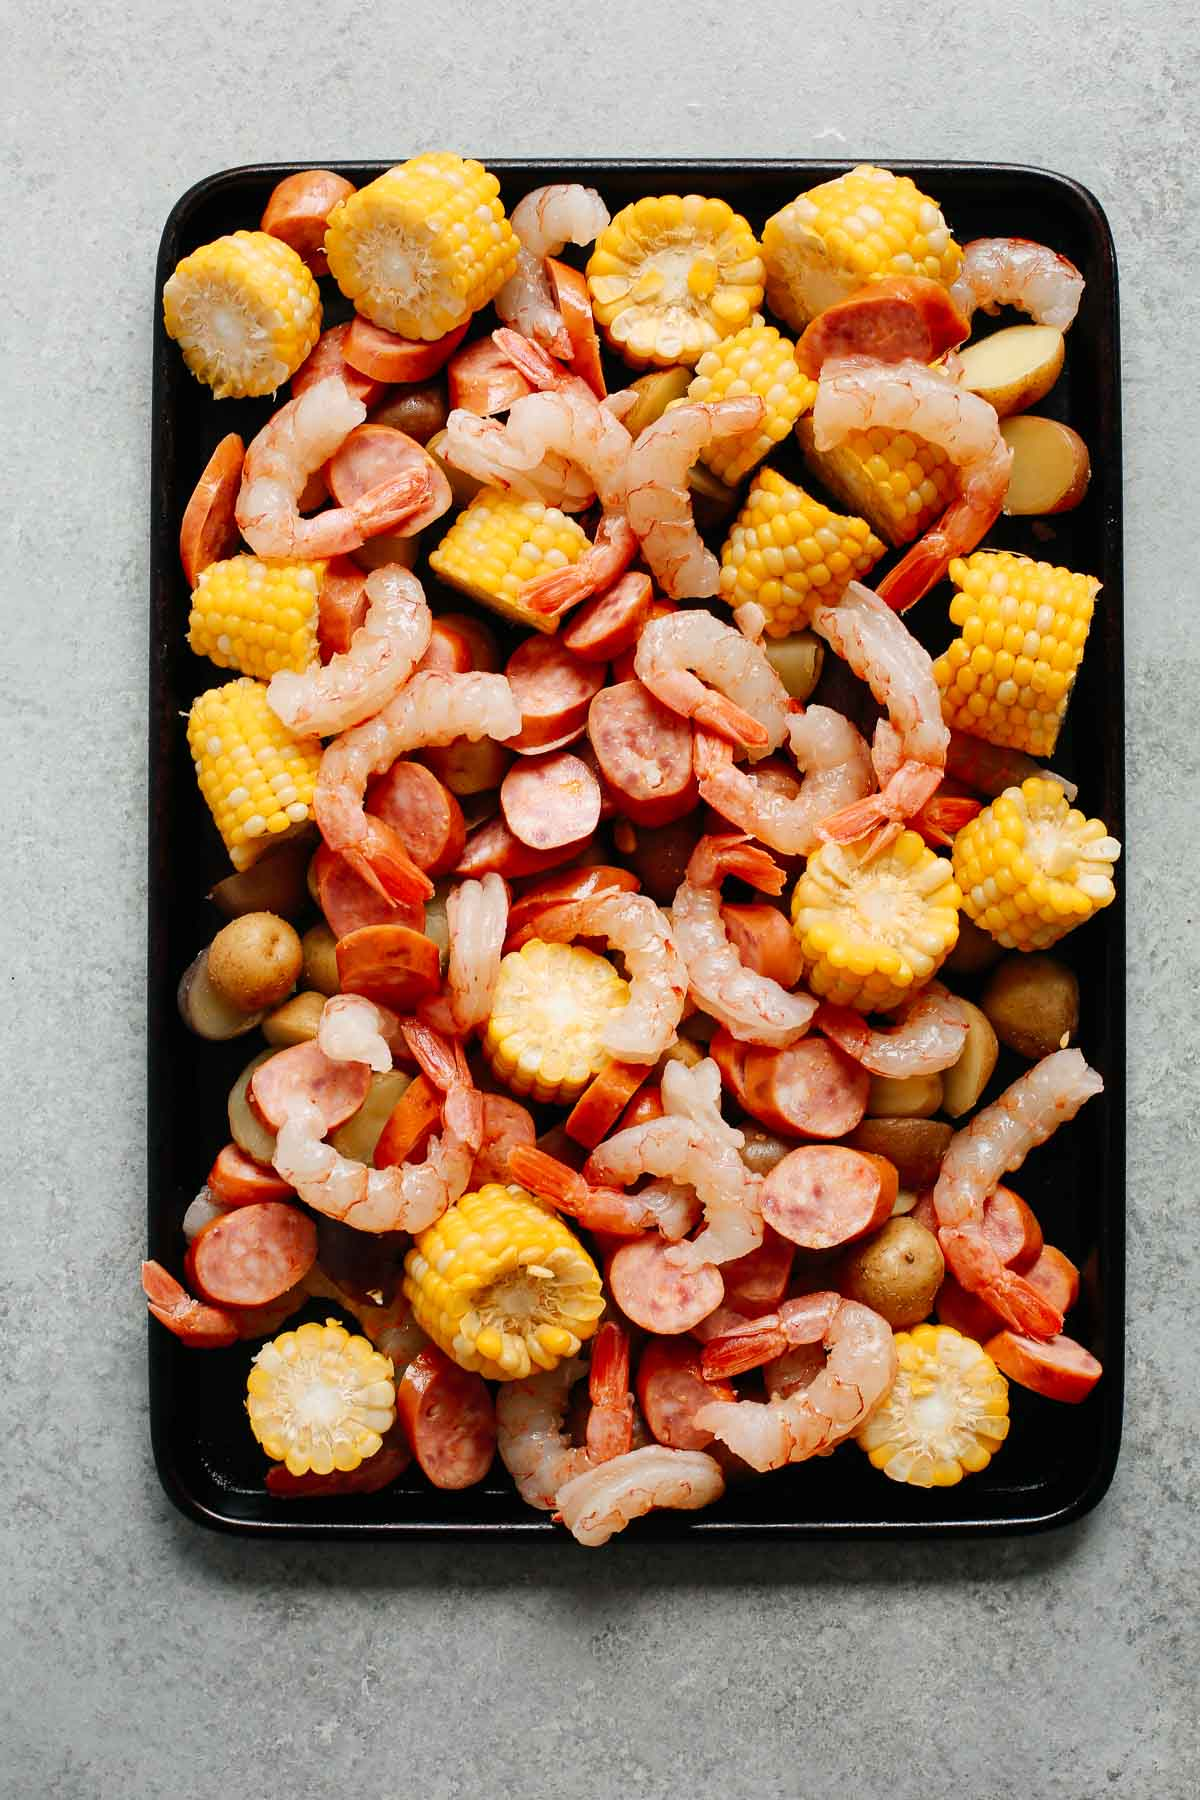 baking sheet with shrimp, sausage, corn, and pototoes